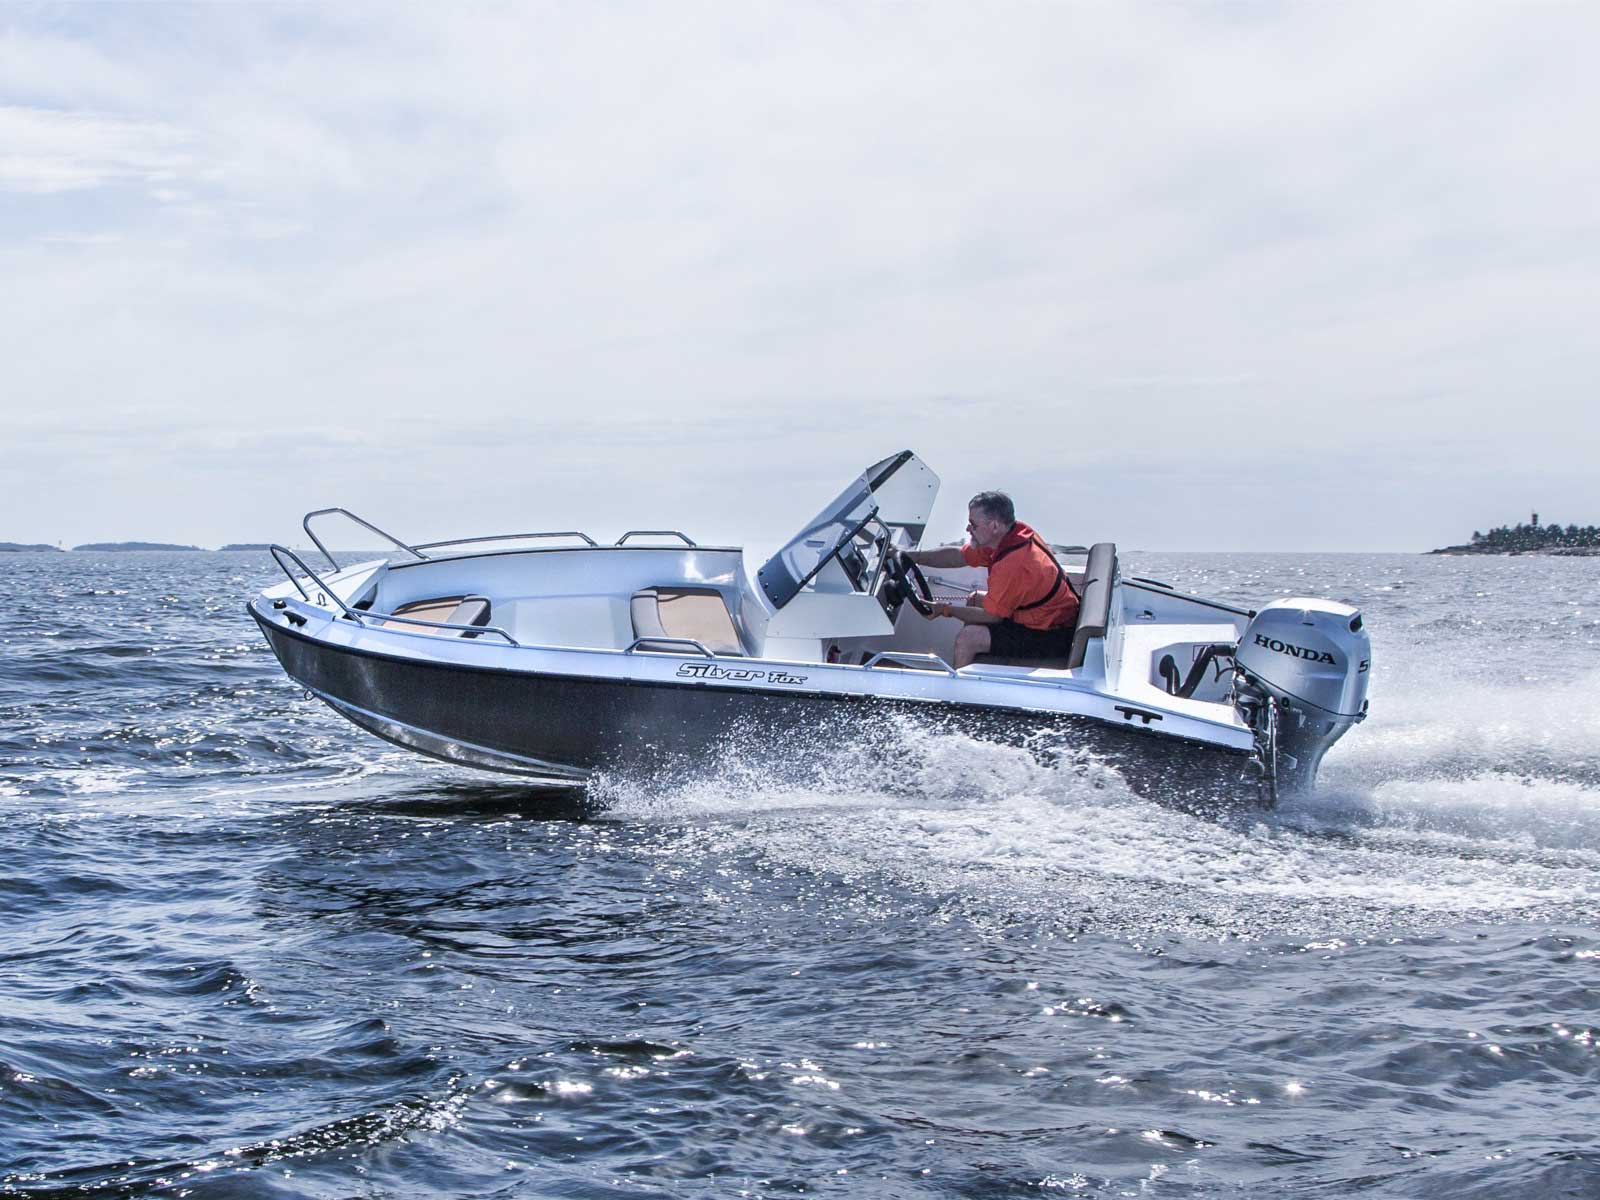 Silver Fox Avant   Boat Solutions, Utting am Ammersee